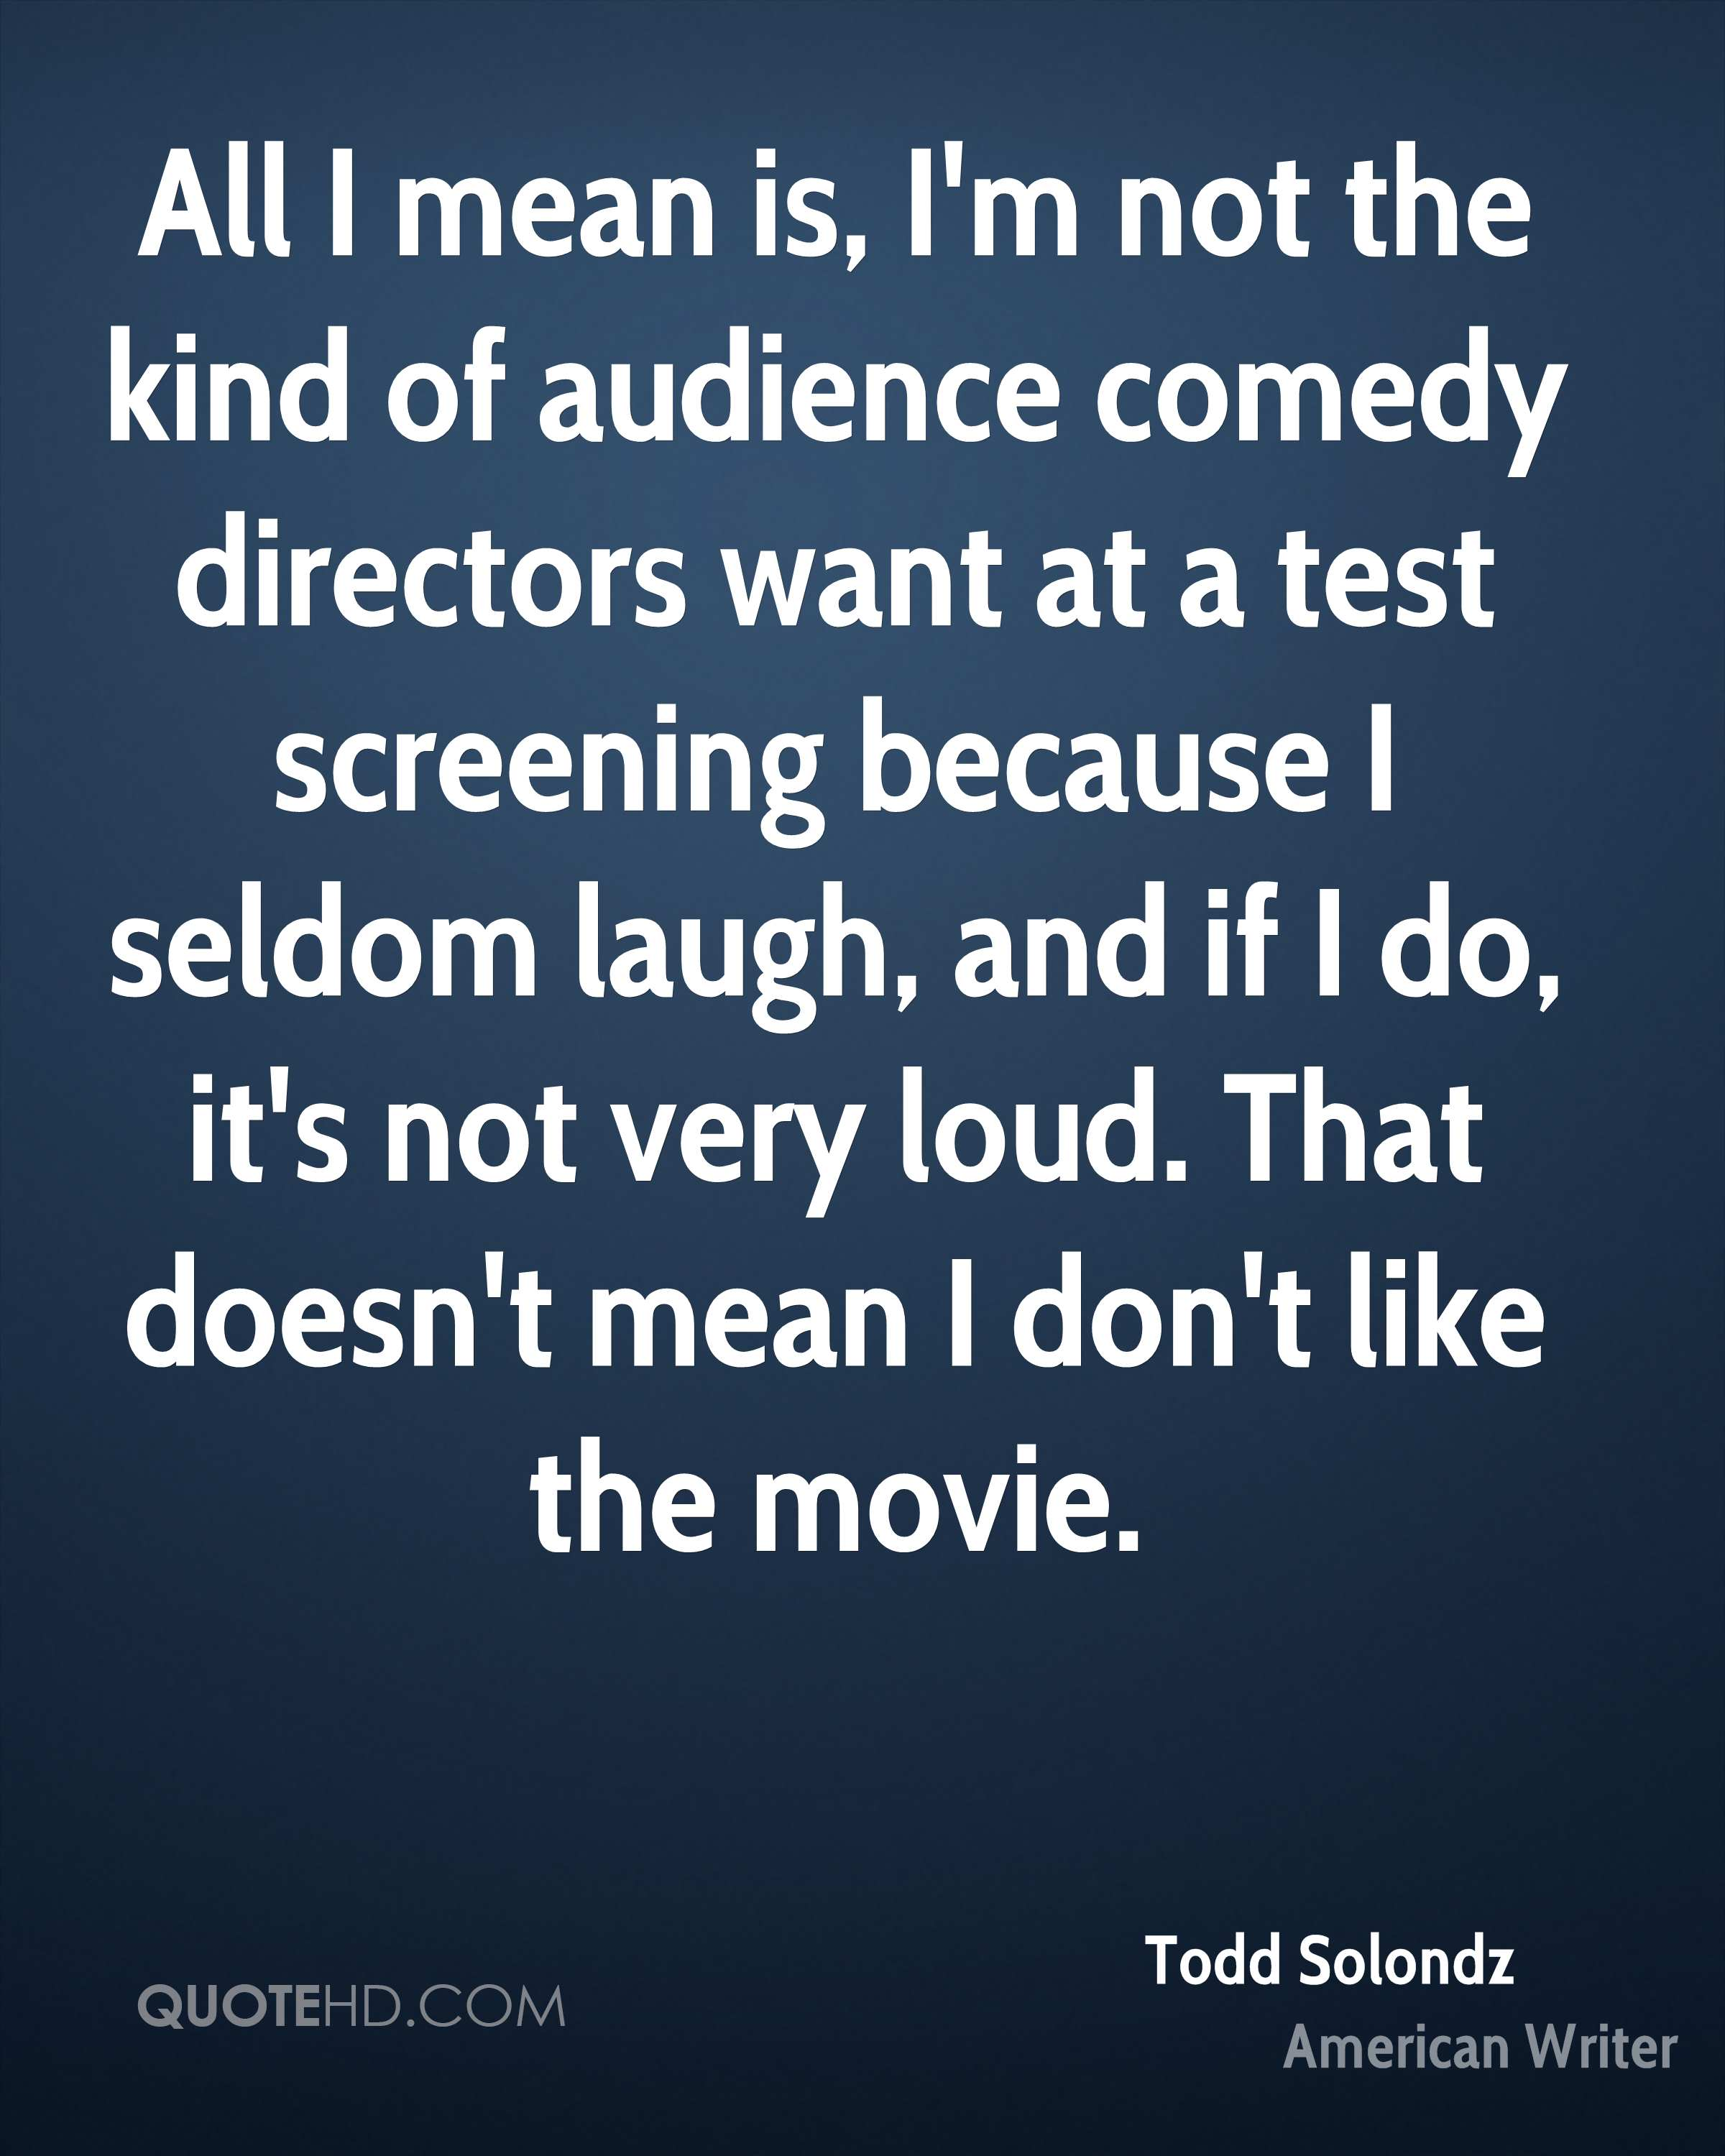 All I mean is, I'm not the kind of audience comedy directors want at a test screening because I seldom laugh, and if I do, it's not very loud. That doesn't mean I don't like the movie.